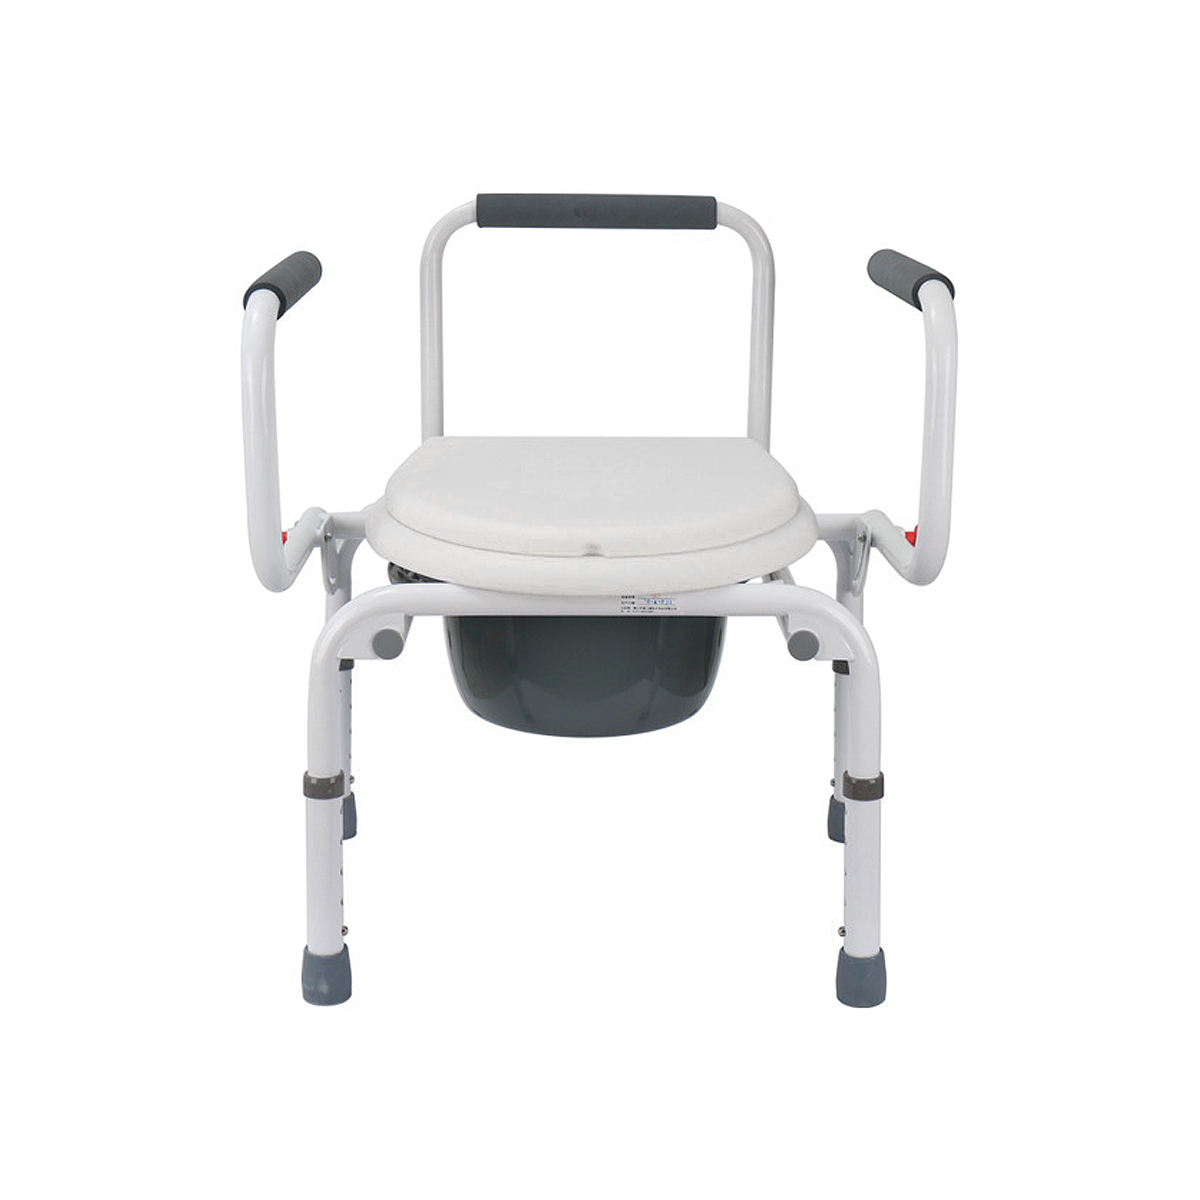 3 in 1 Commode Toilet Shower Bedside Chair Fold-up Mobile Disablity ...